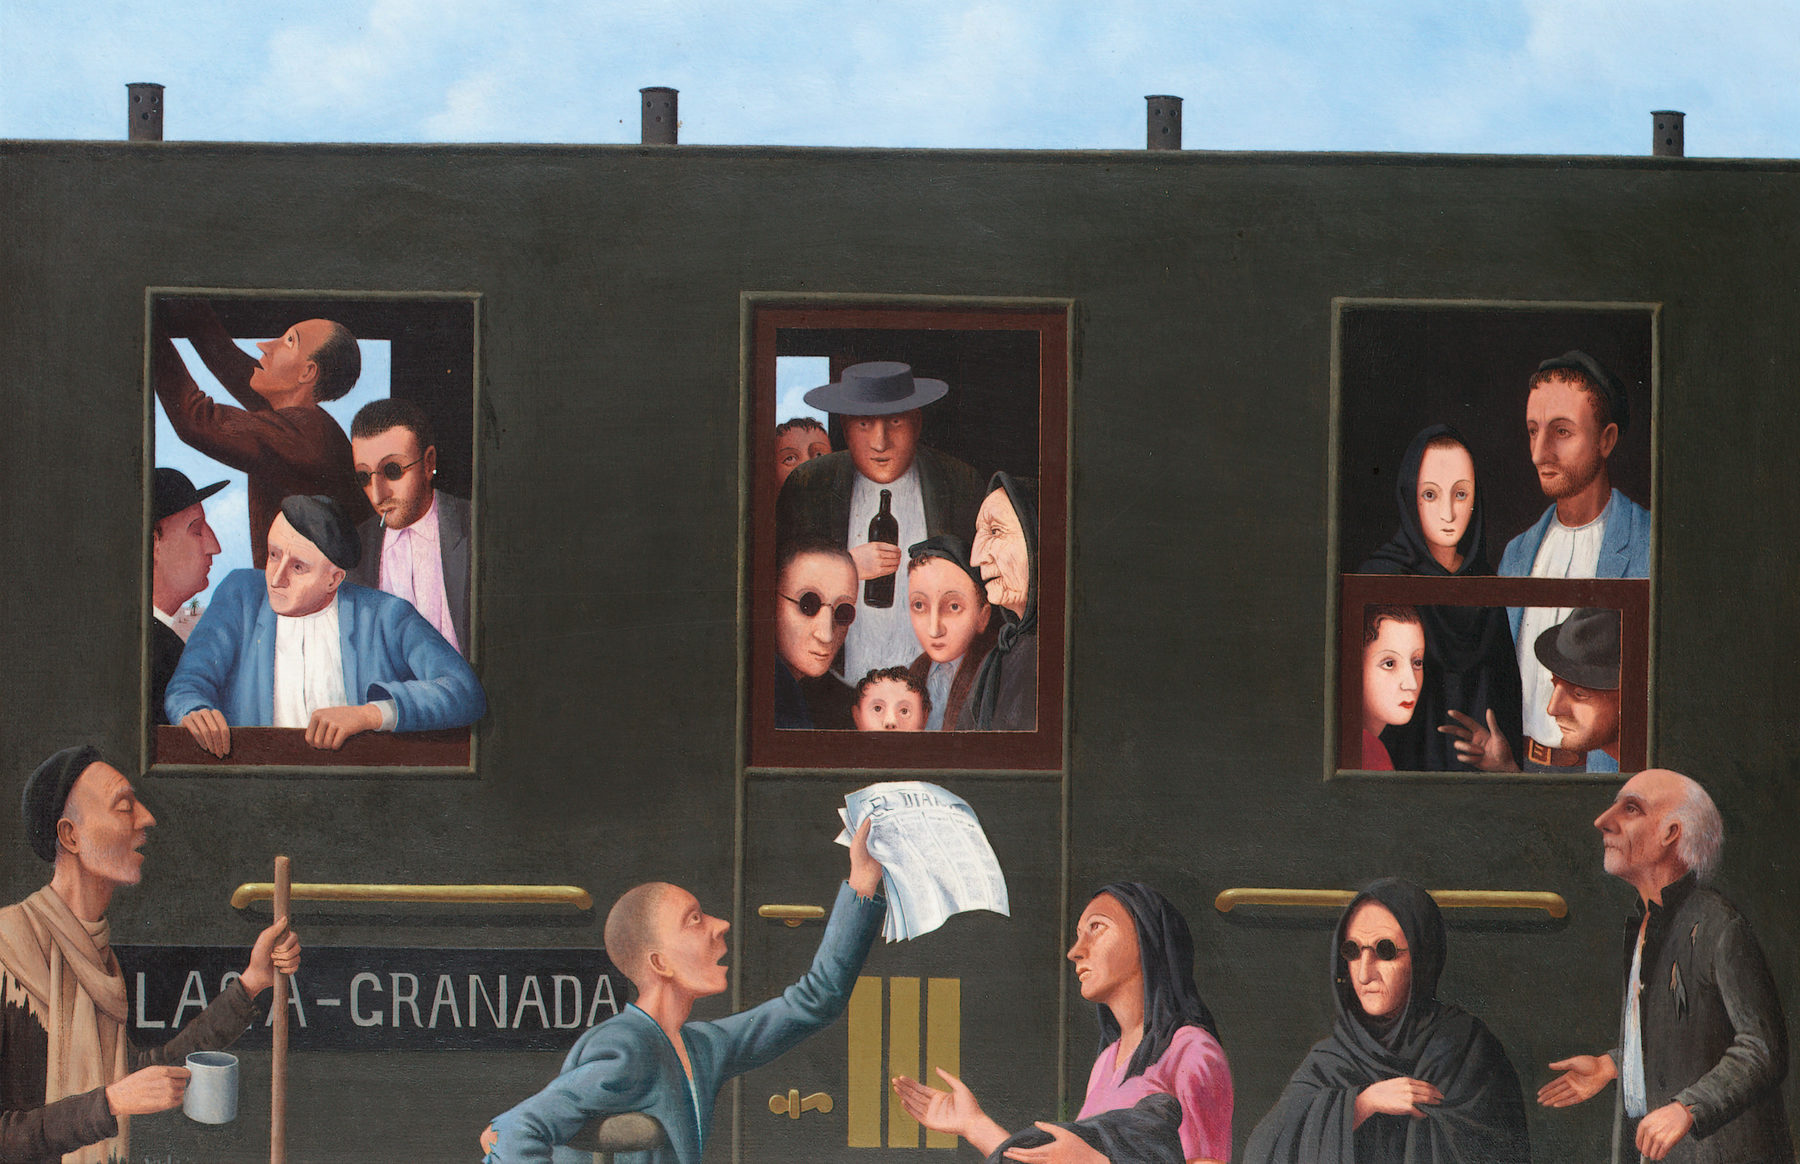 A solid black railway carriage dominates the painting with only the small stretch of blue cloudy sky at the top of the composition giving an indication of the wider landscape. Words on the side of the train indicates it is bound for Granada. The carriage is crowded with people of all ages while five people stand on the platform.